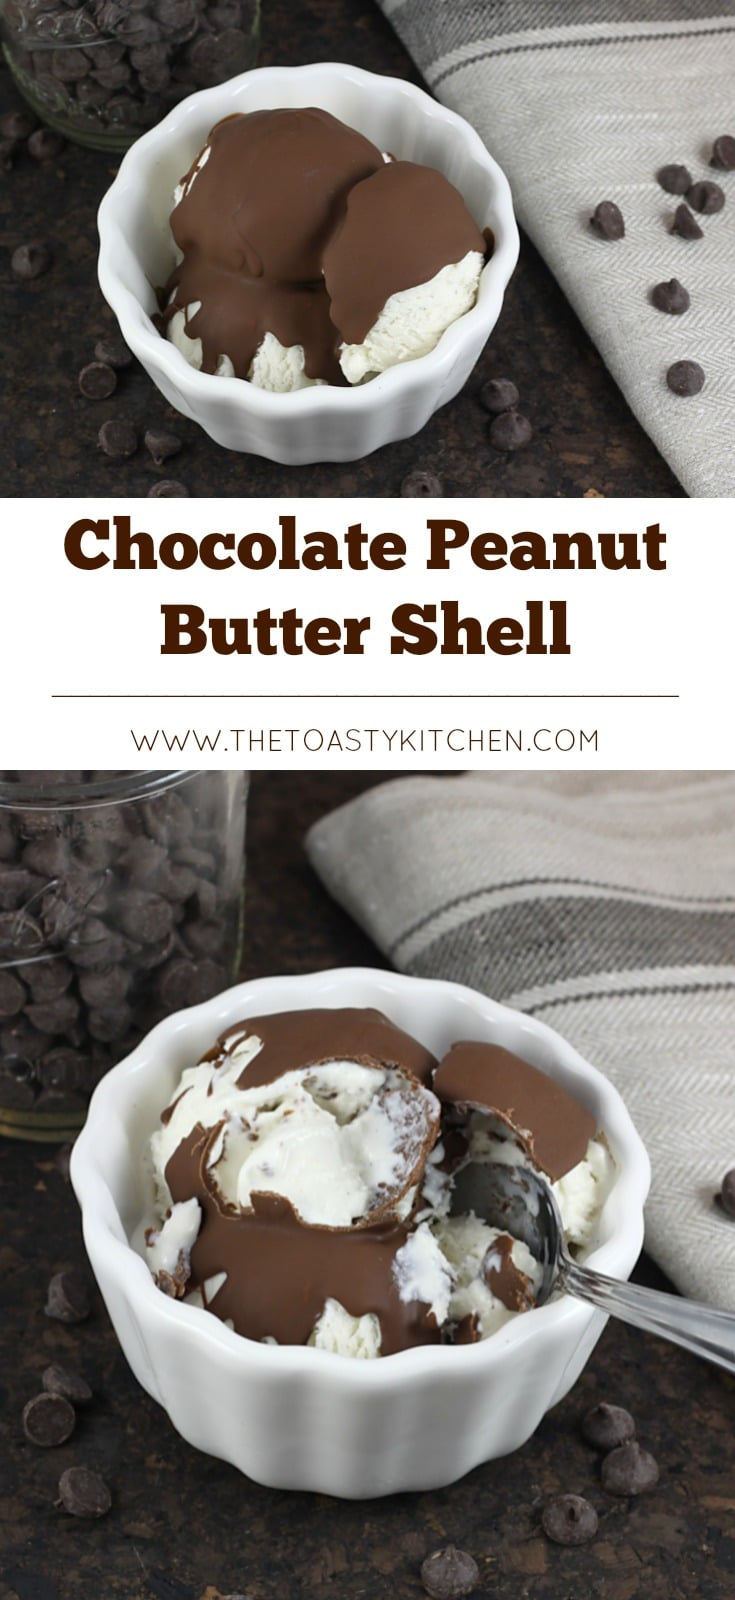 Dark Chocolate Peanut Butter Shell by The Toasty Kitchen